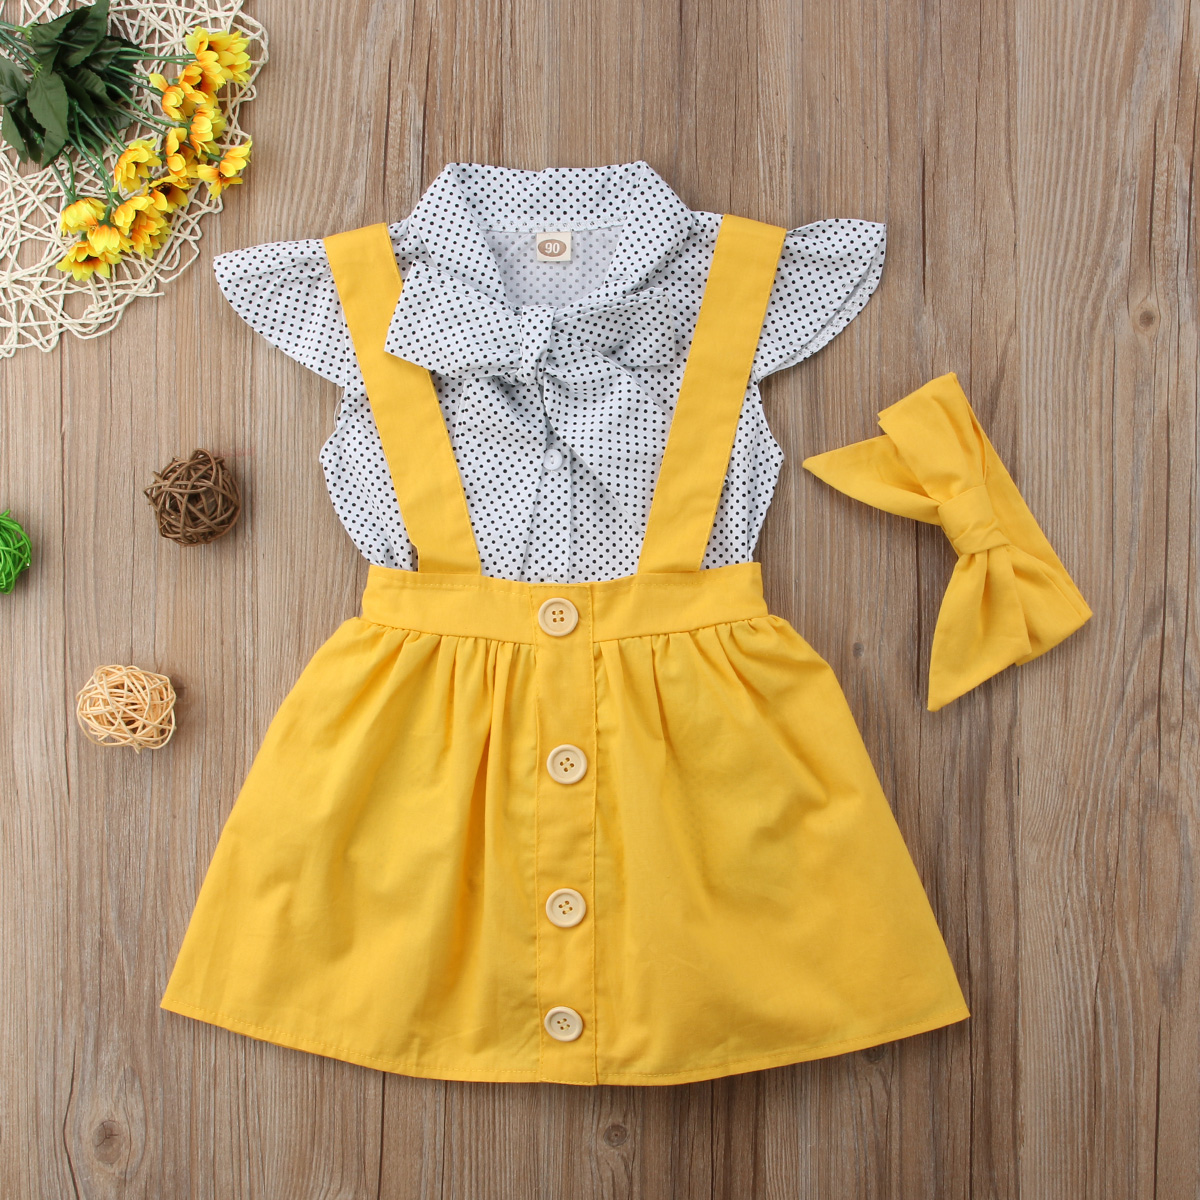 Headband+Romper 3Pcs Clothes Outfits US Baby Toddler Girls Kids Overalls Skirt